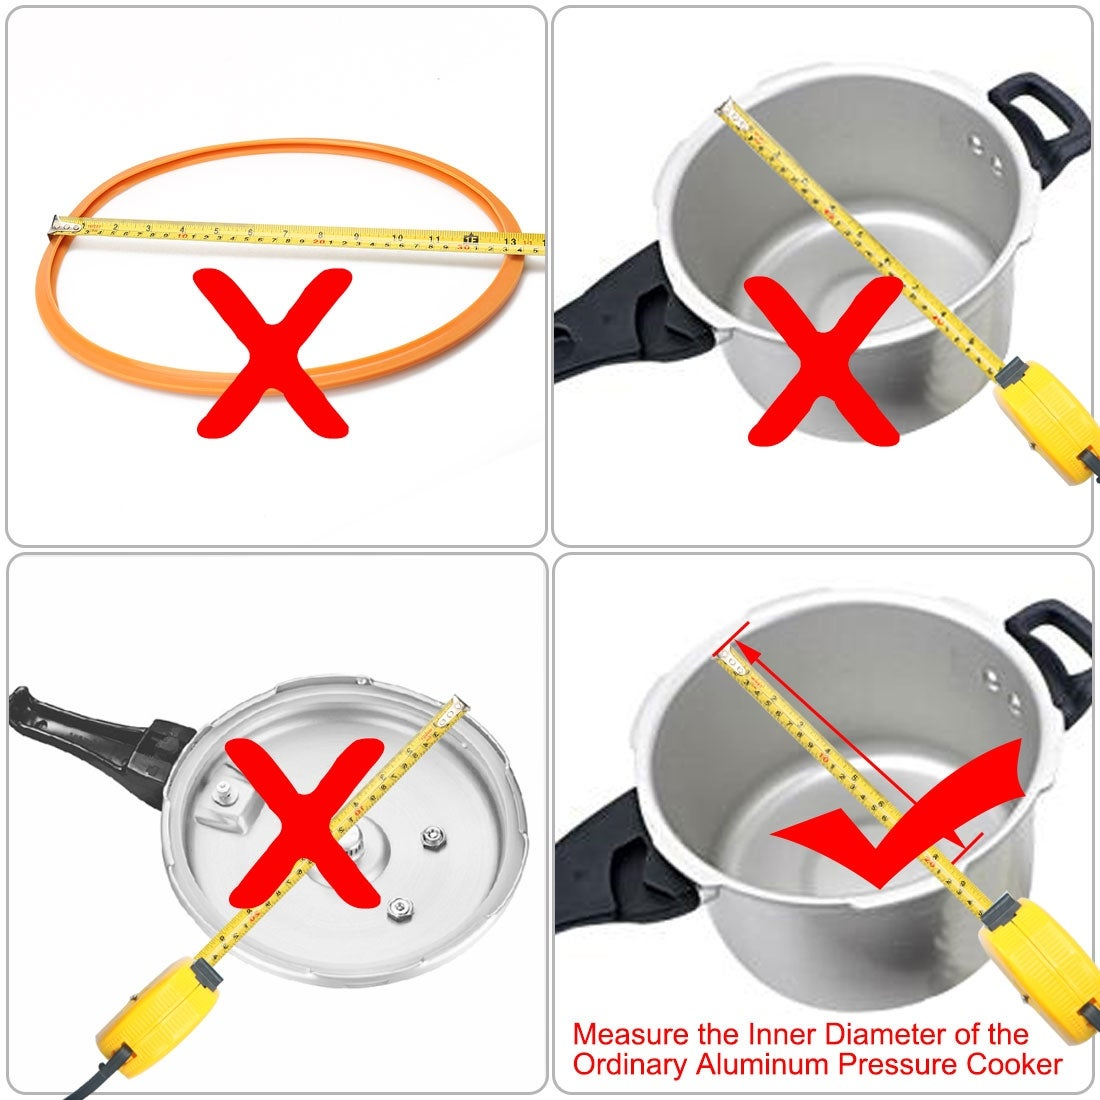 NEW 26cm Replacement Silicone Rubber Sealing Gasket Ring for Pressure Cooker